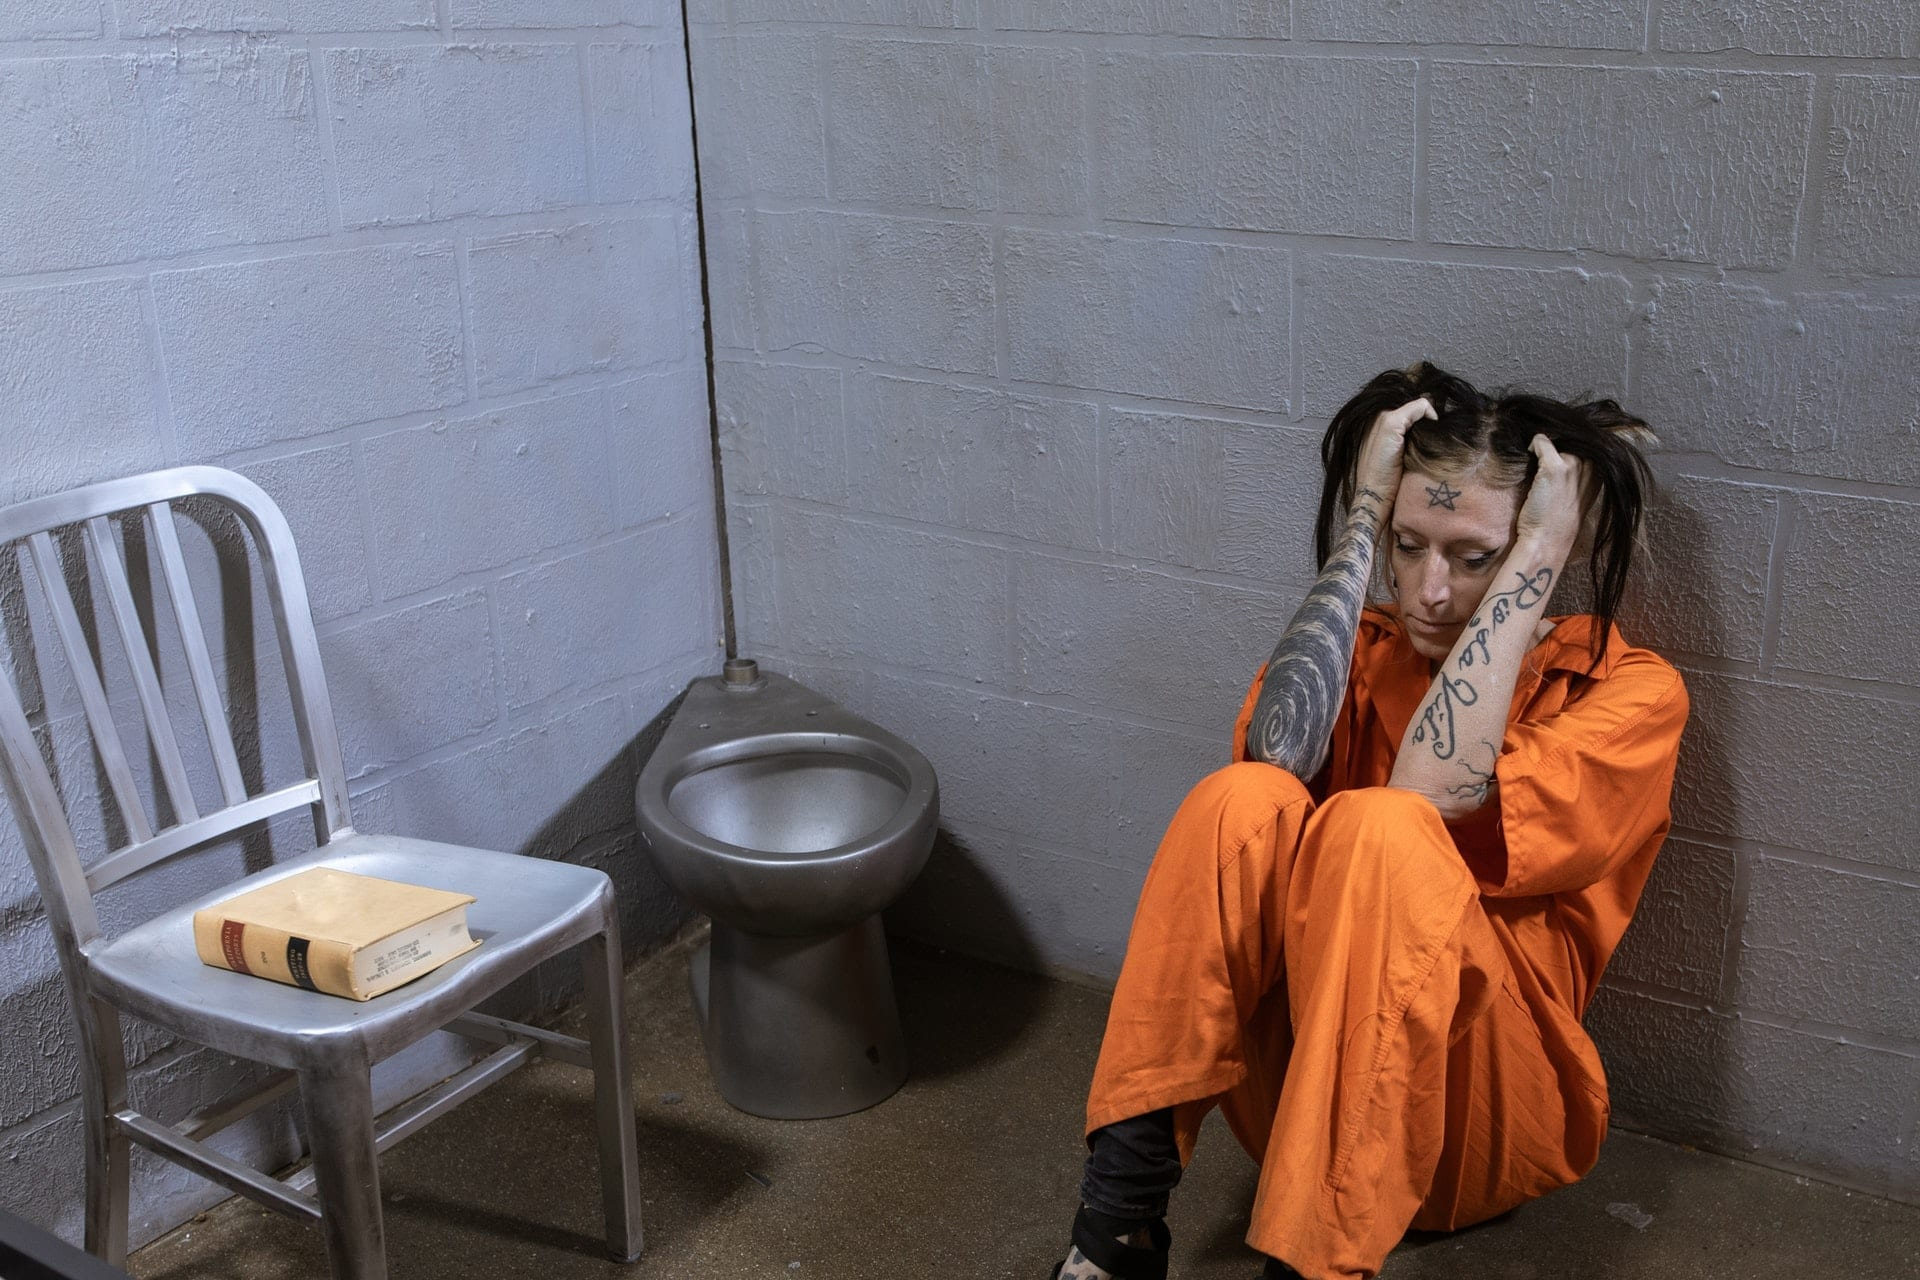 Everyone who comes to prison gets a mental health screening.